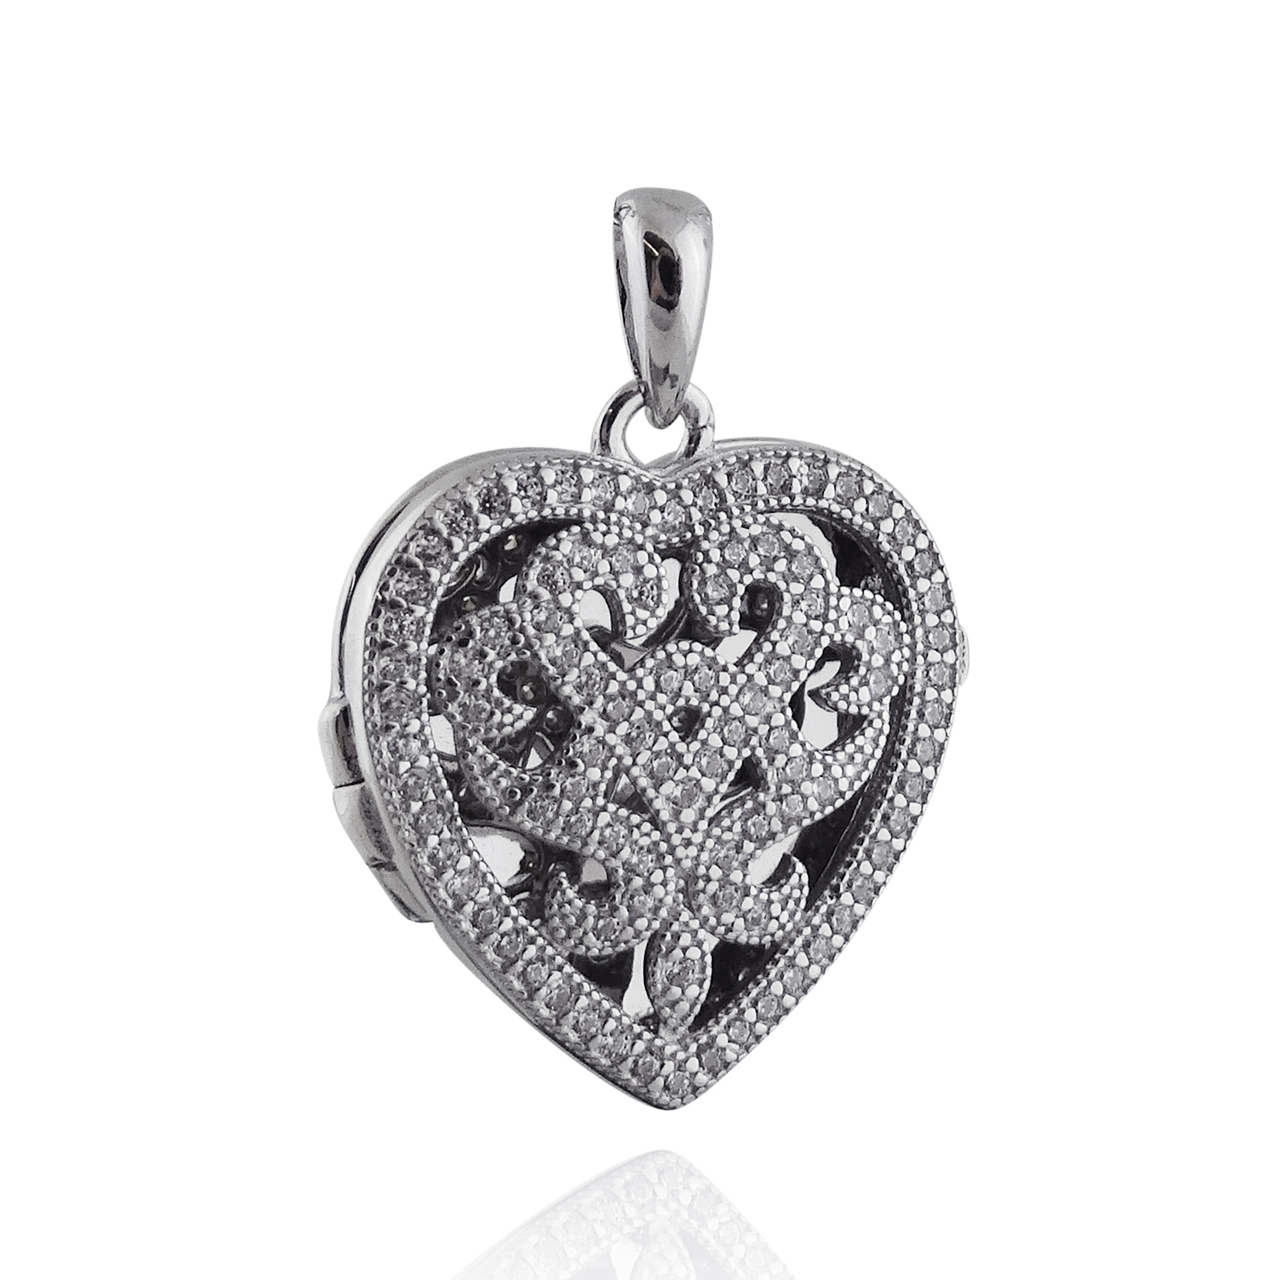 Heart Locket Necklace with CZ Swirl Design 925 Sterling Silver